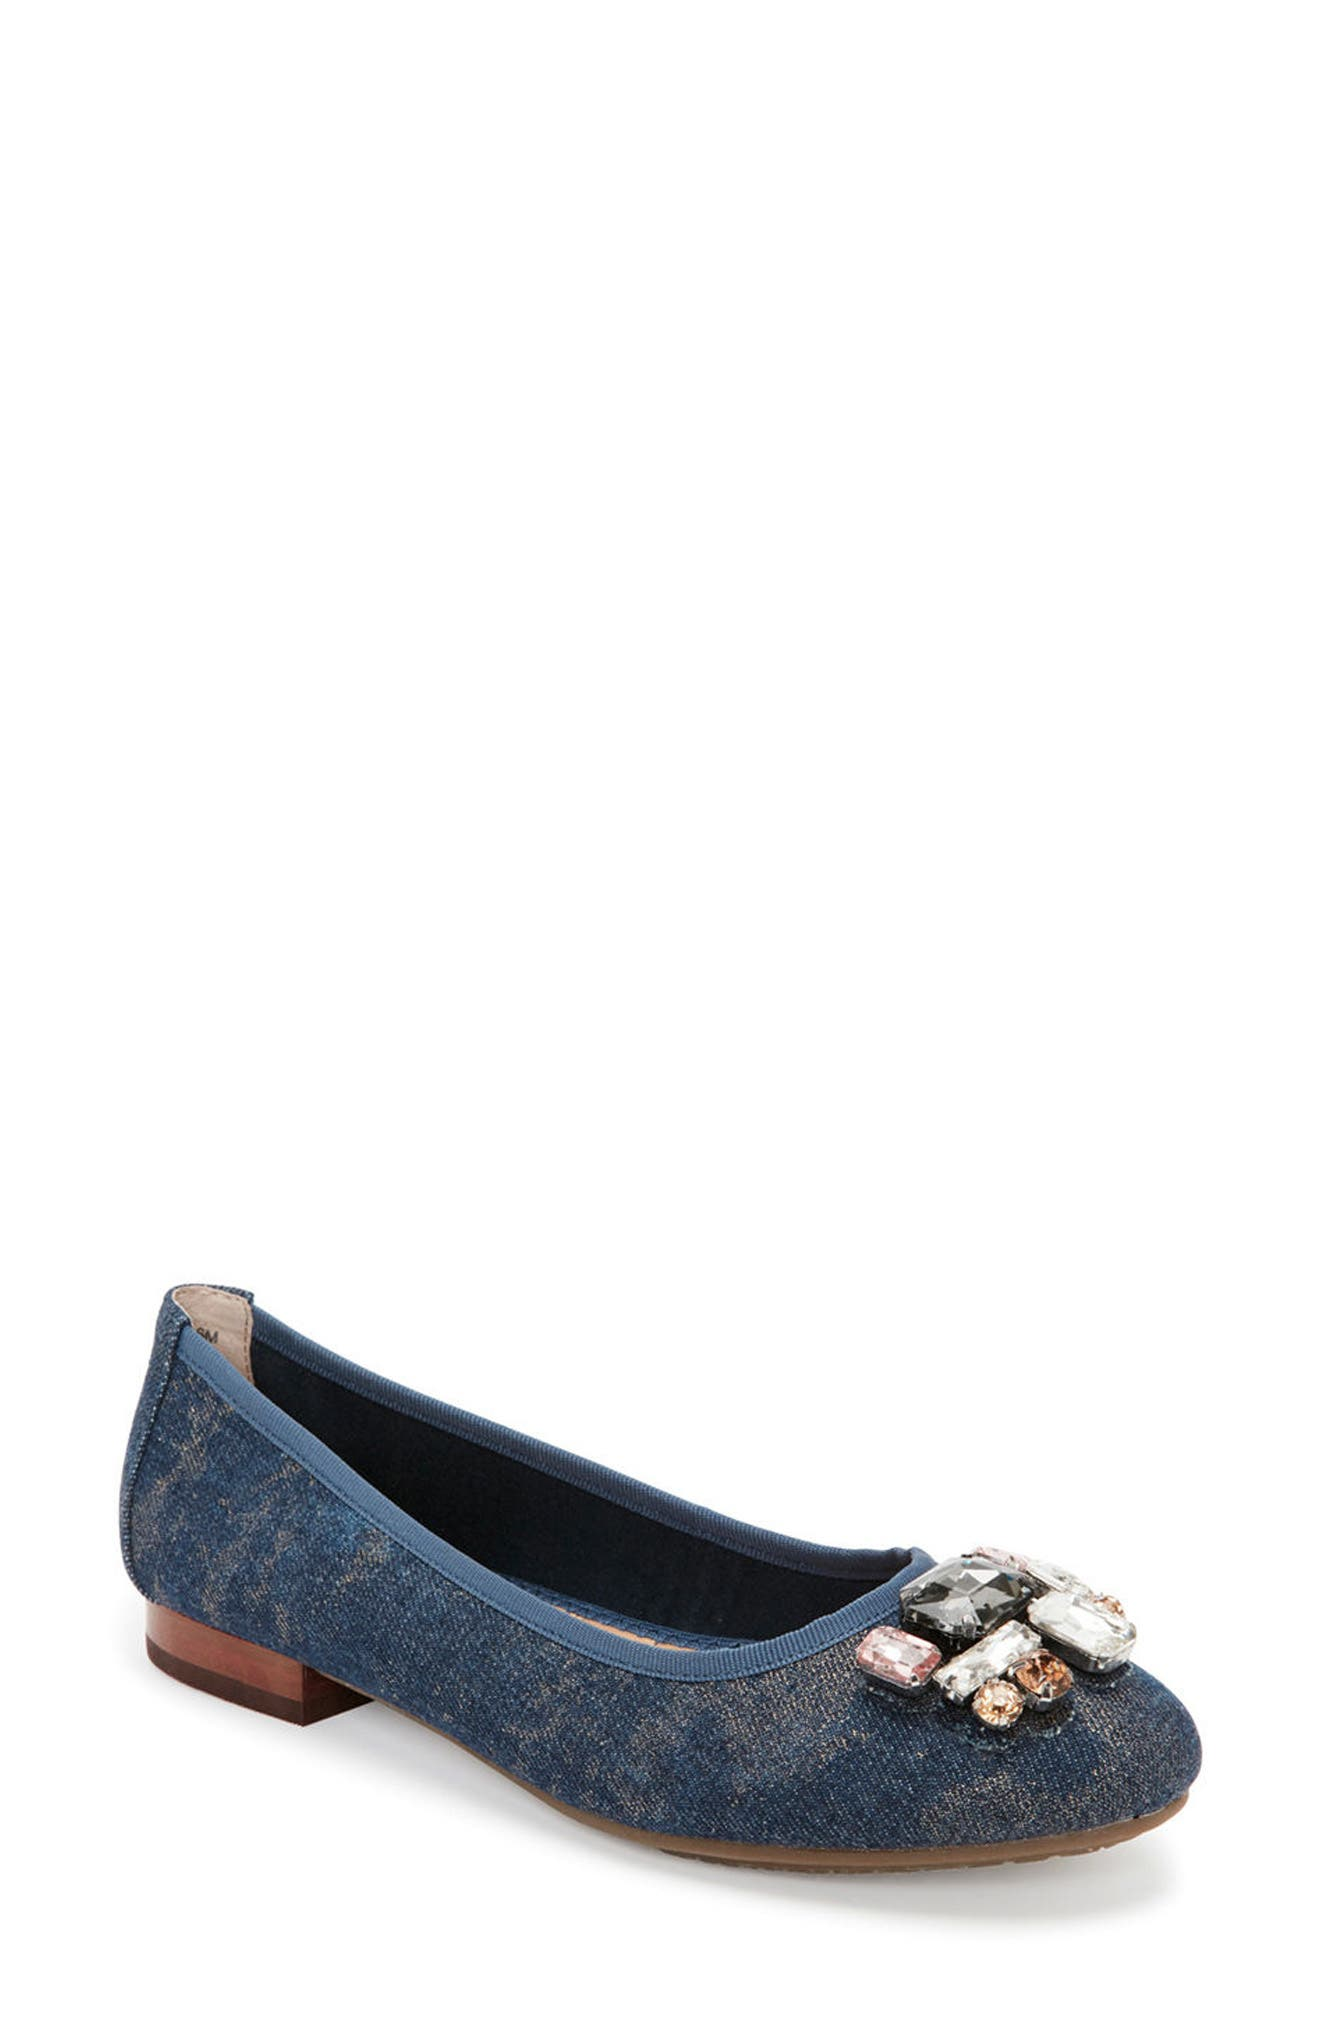 Sapphire Crystal Embellished Flat,                         Main,                         color, Blue Champagne Denim Fabric